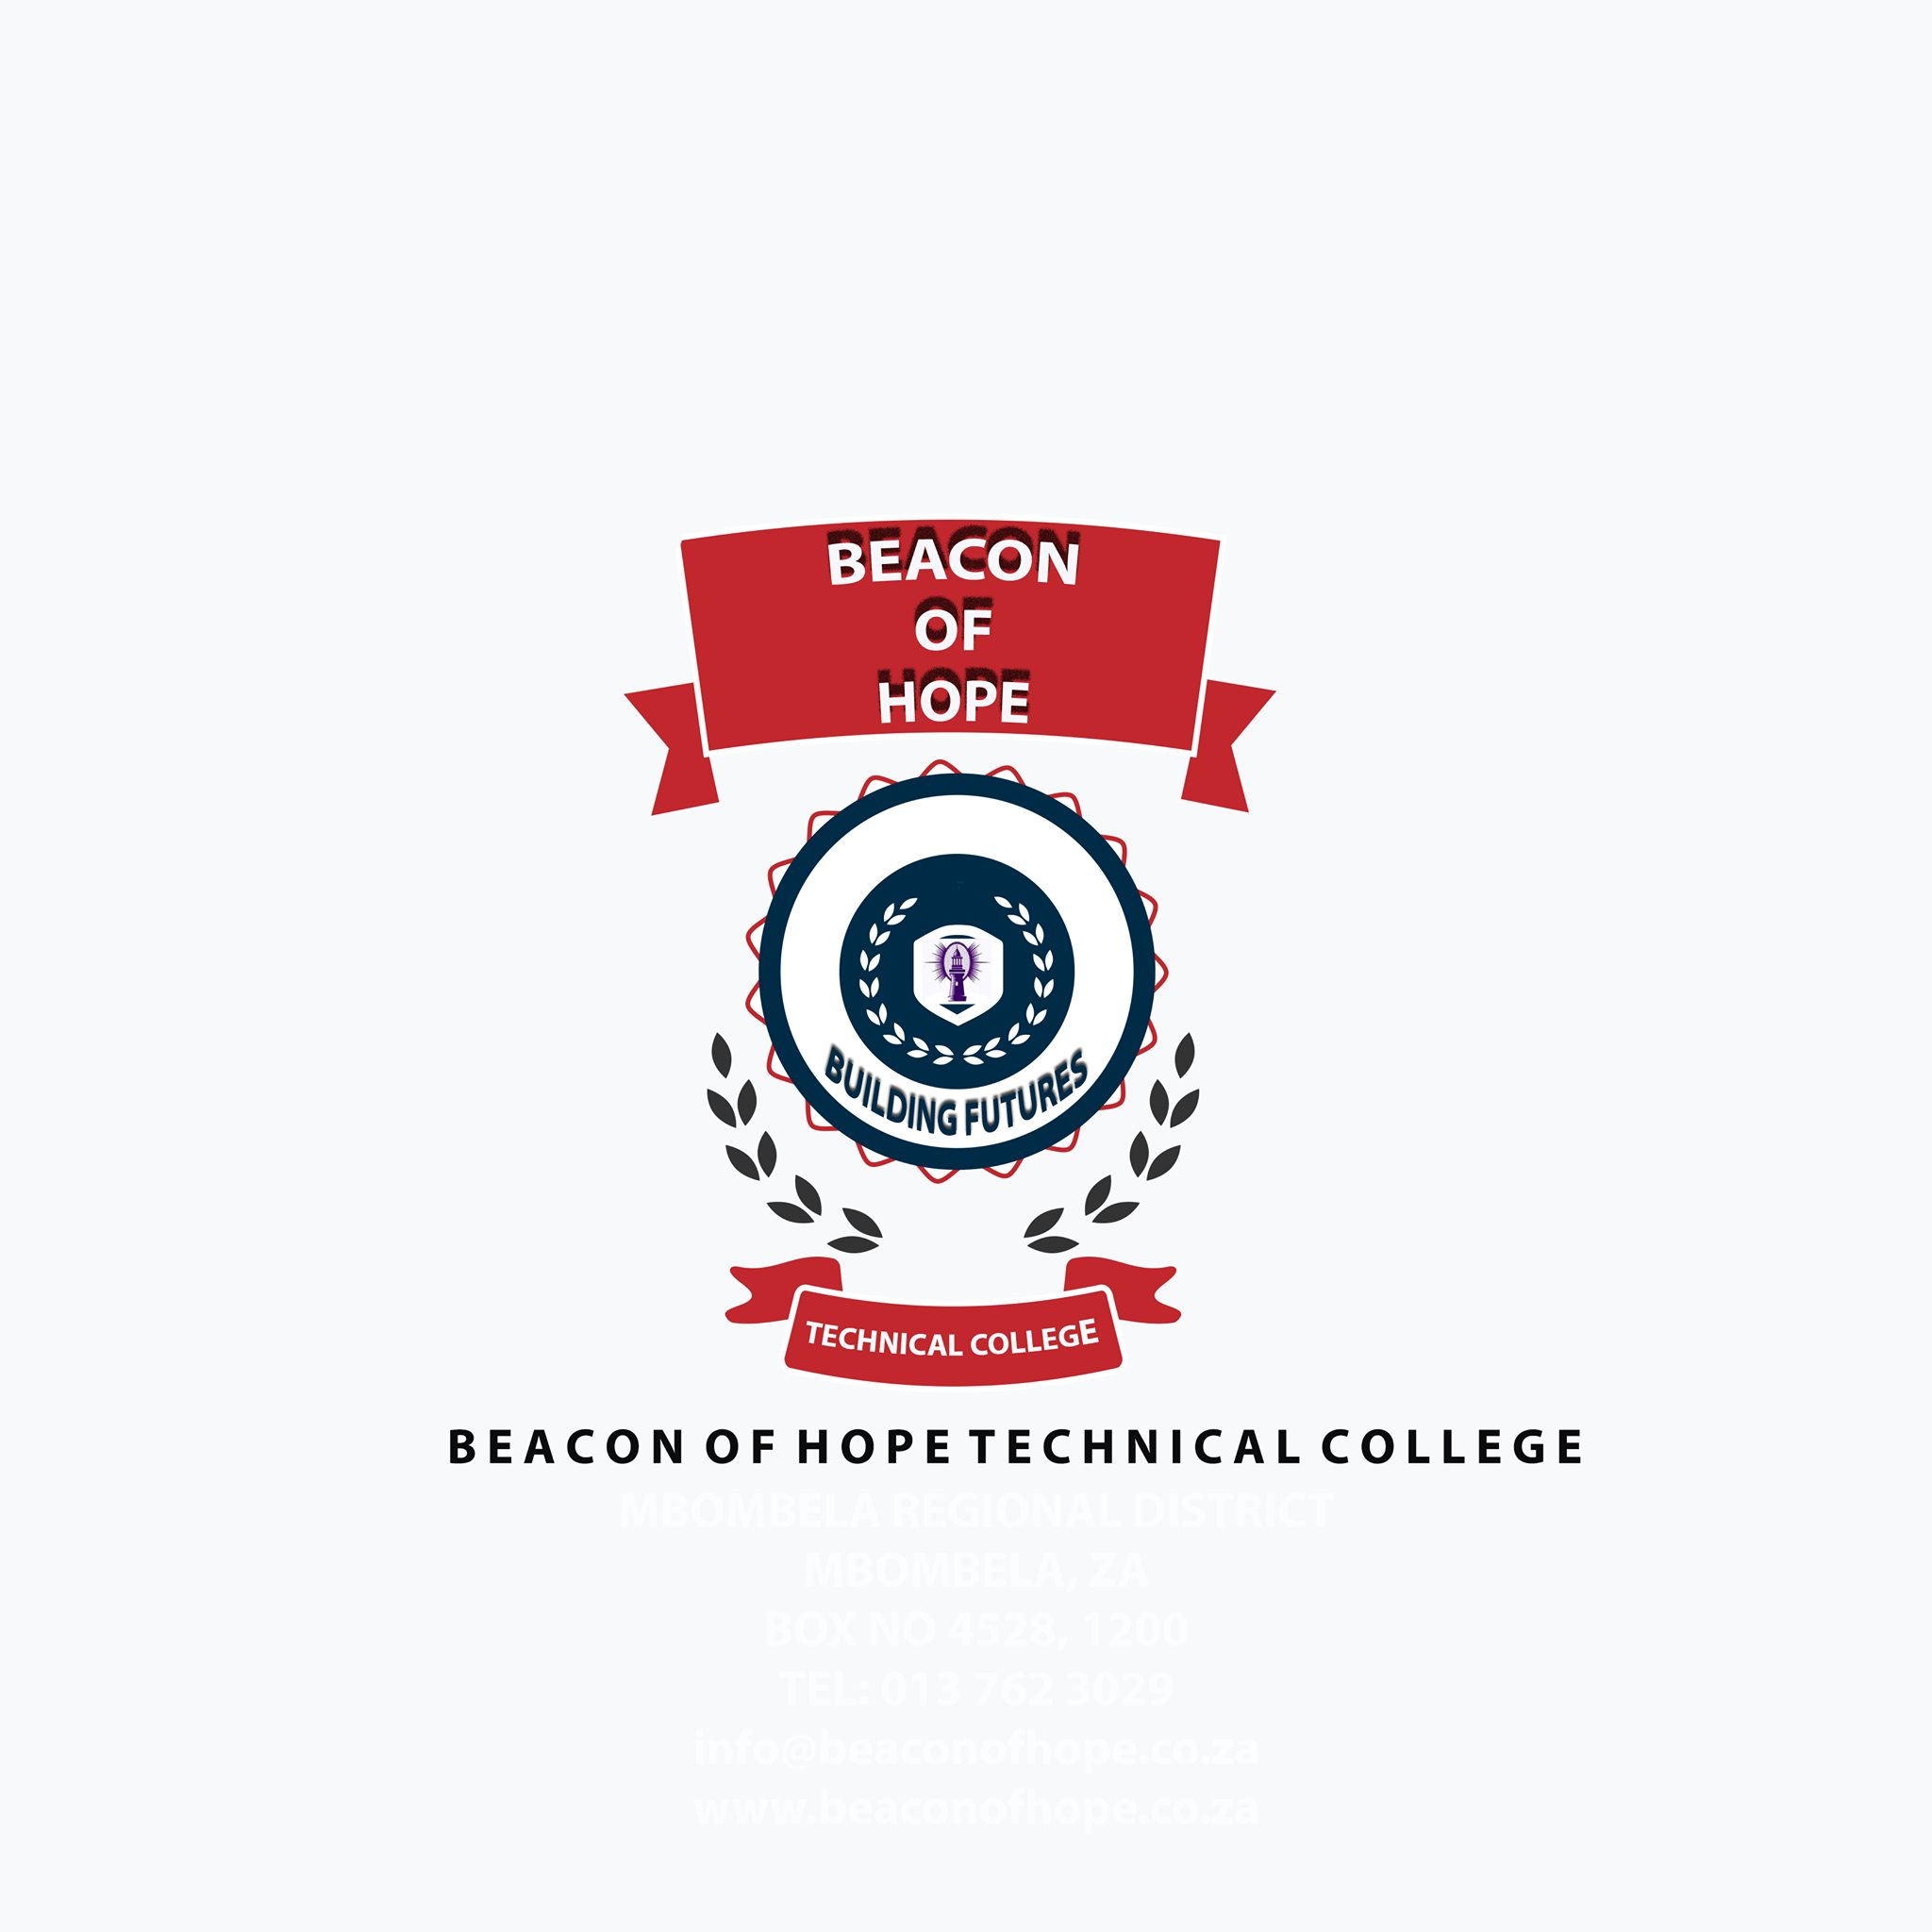 Beacon of Hope Technical College